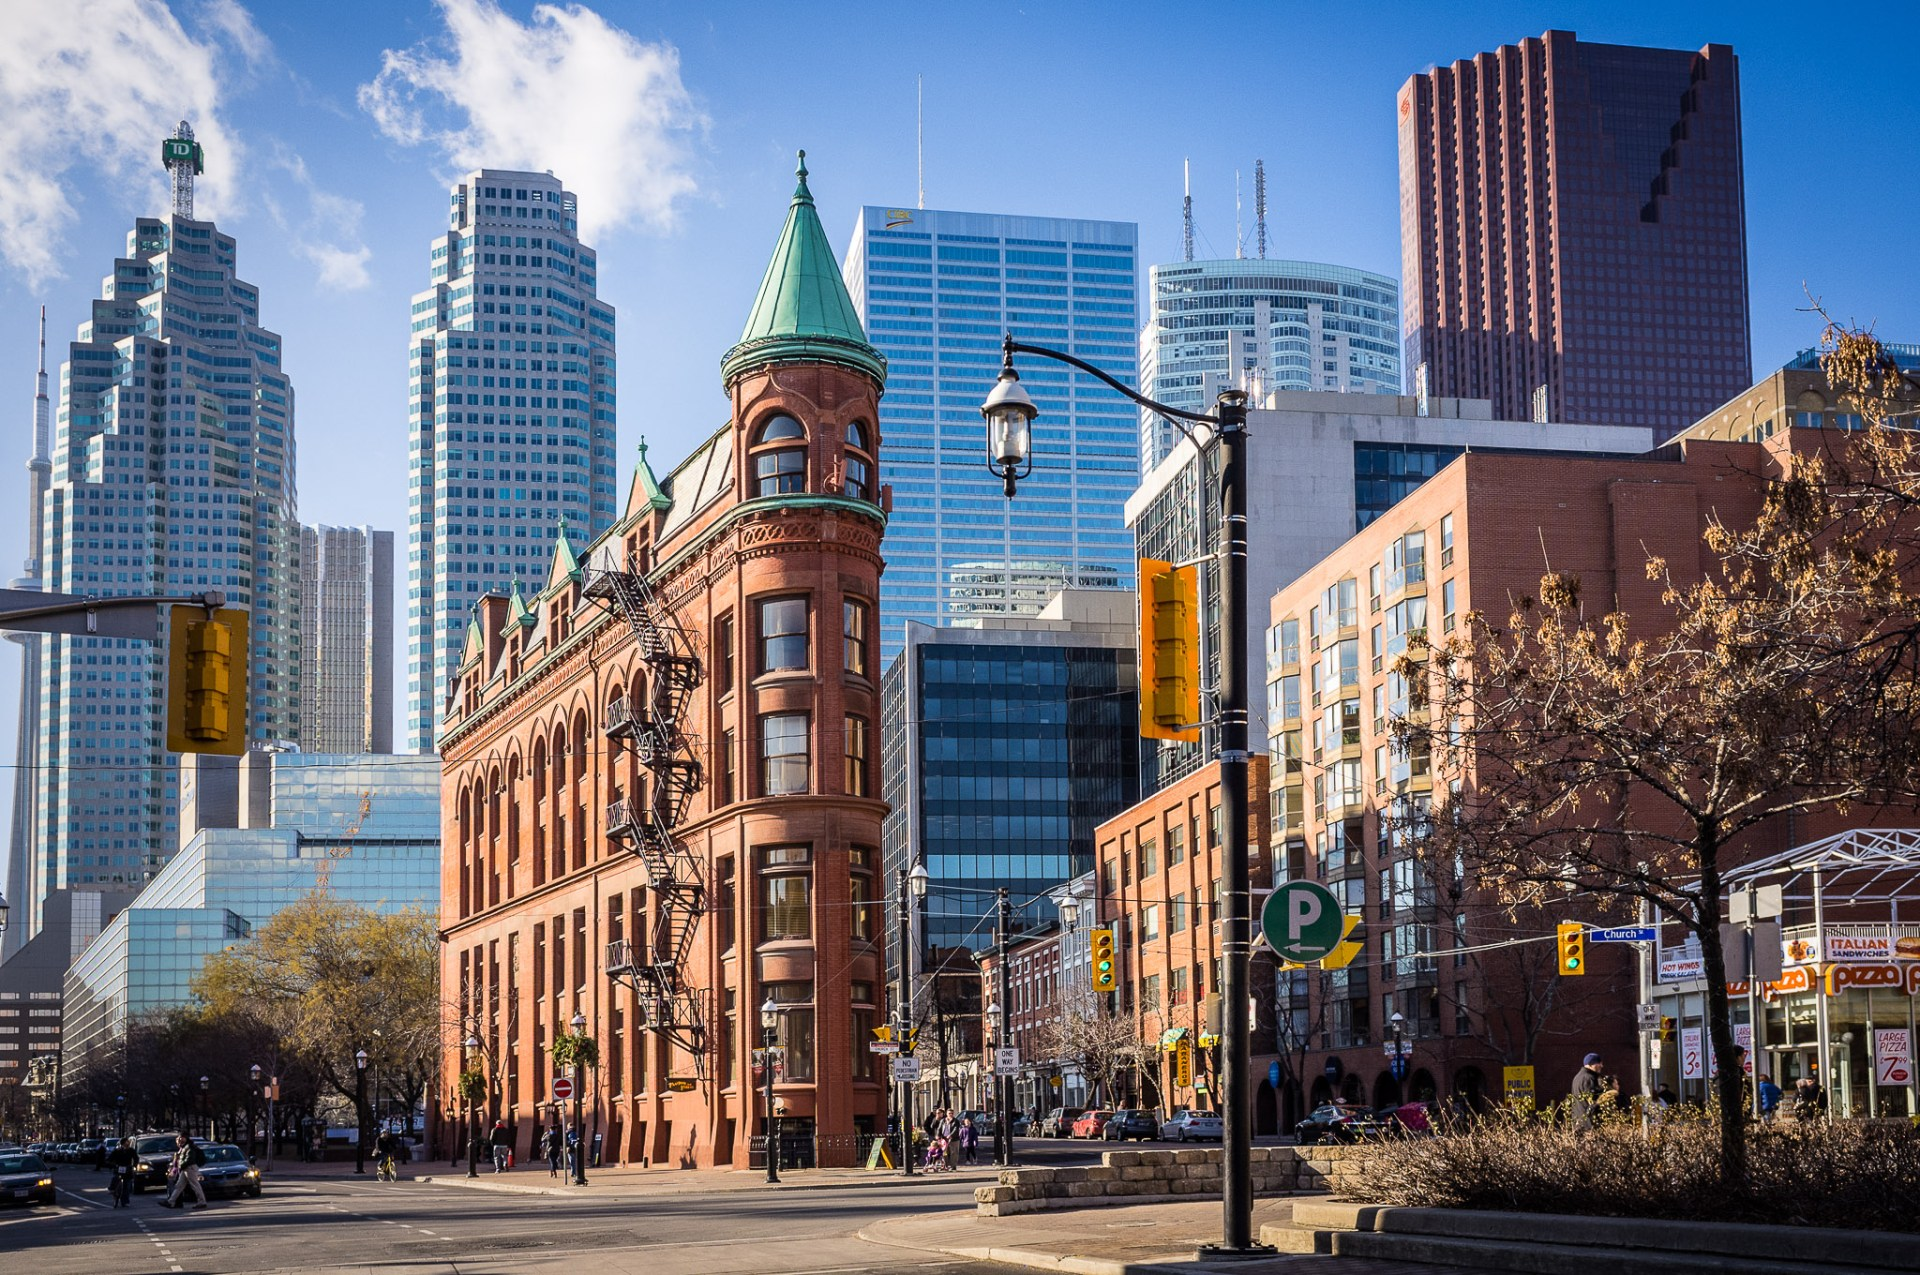 A photograph of Toronto's Gooderham Building, the flat Iron